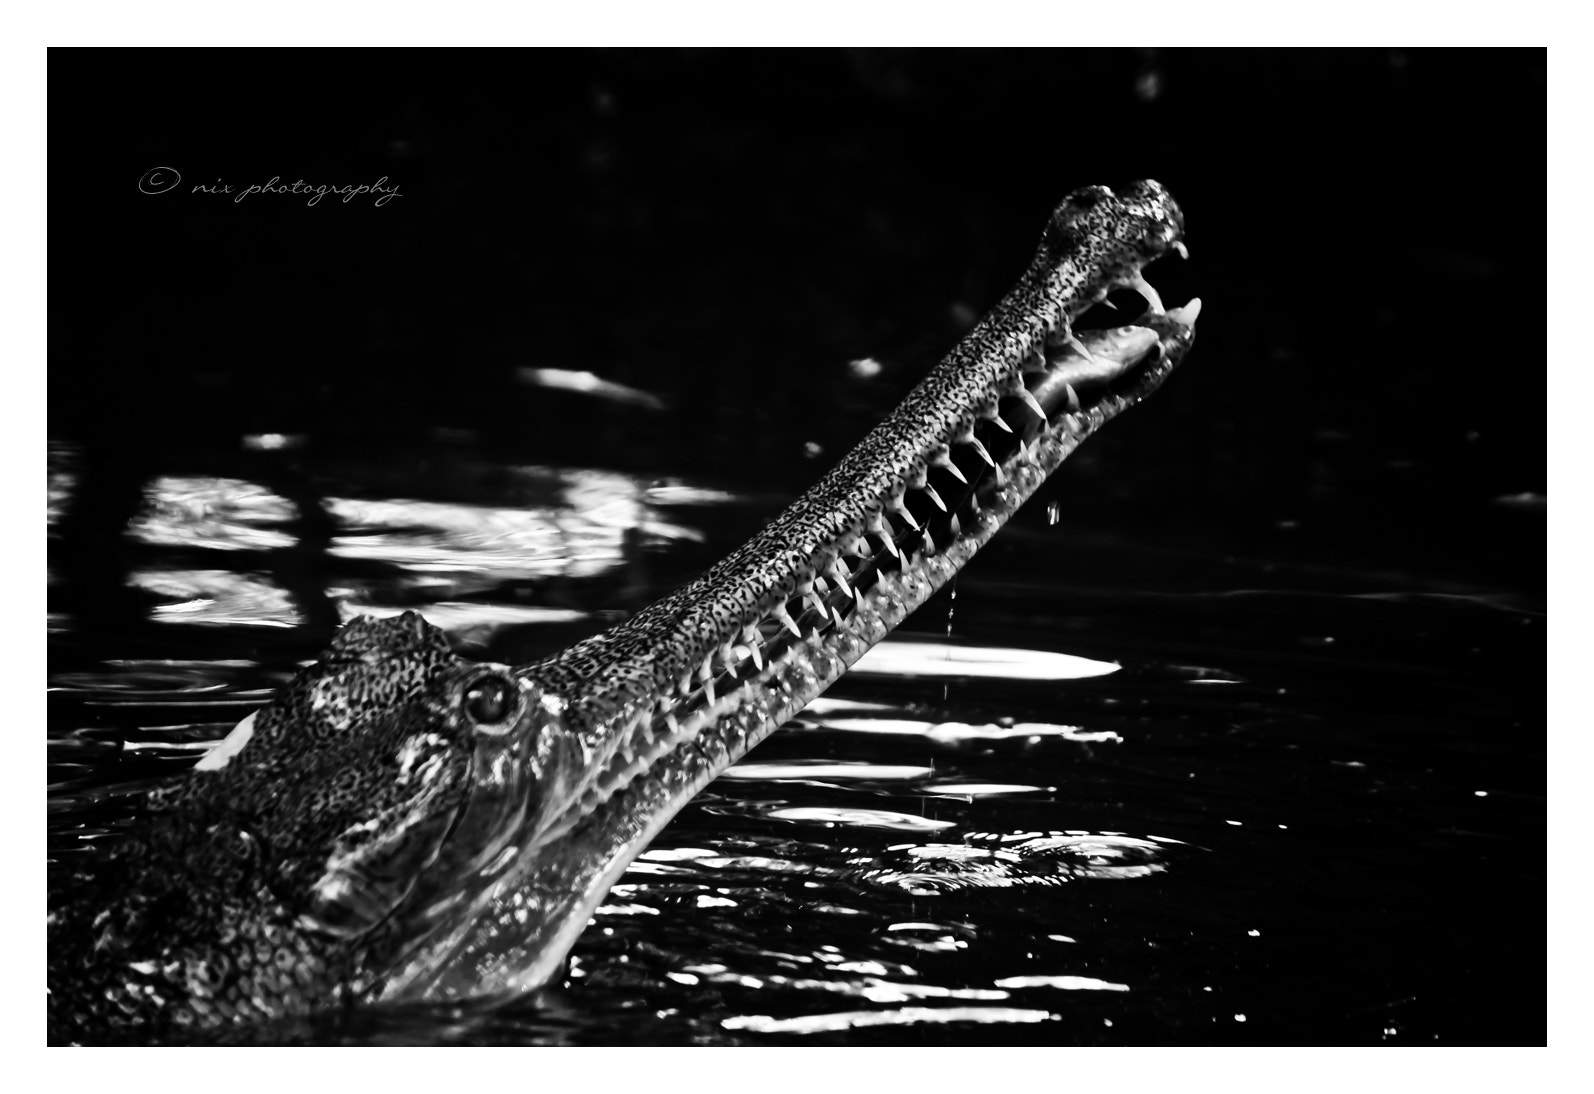 Photograph Killer Croc by Nithesh Kanth on 500px